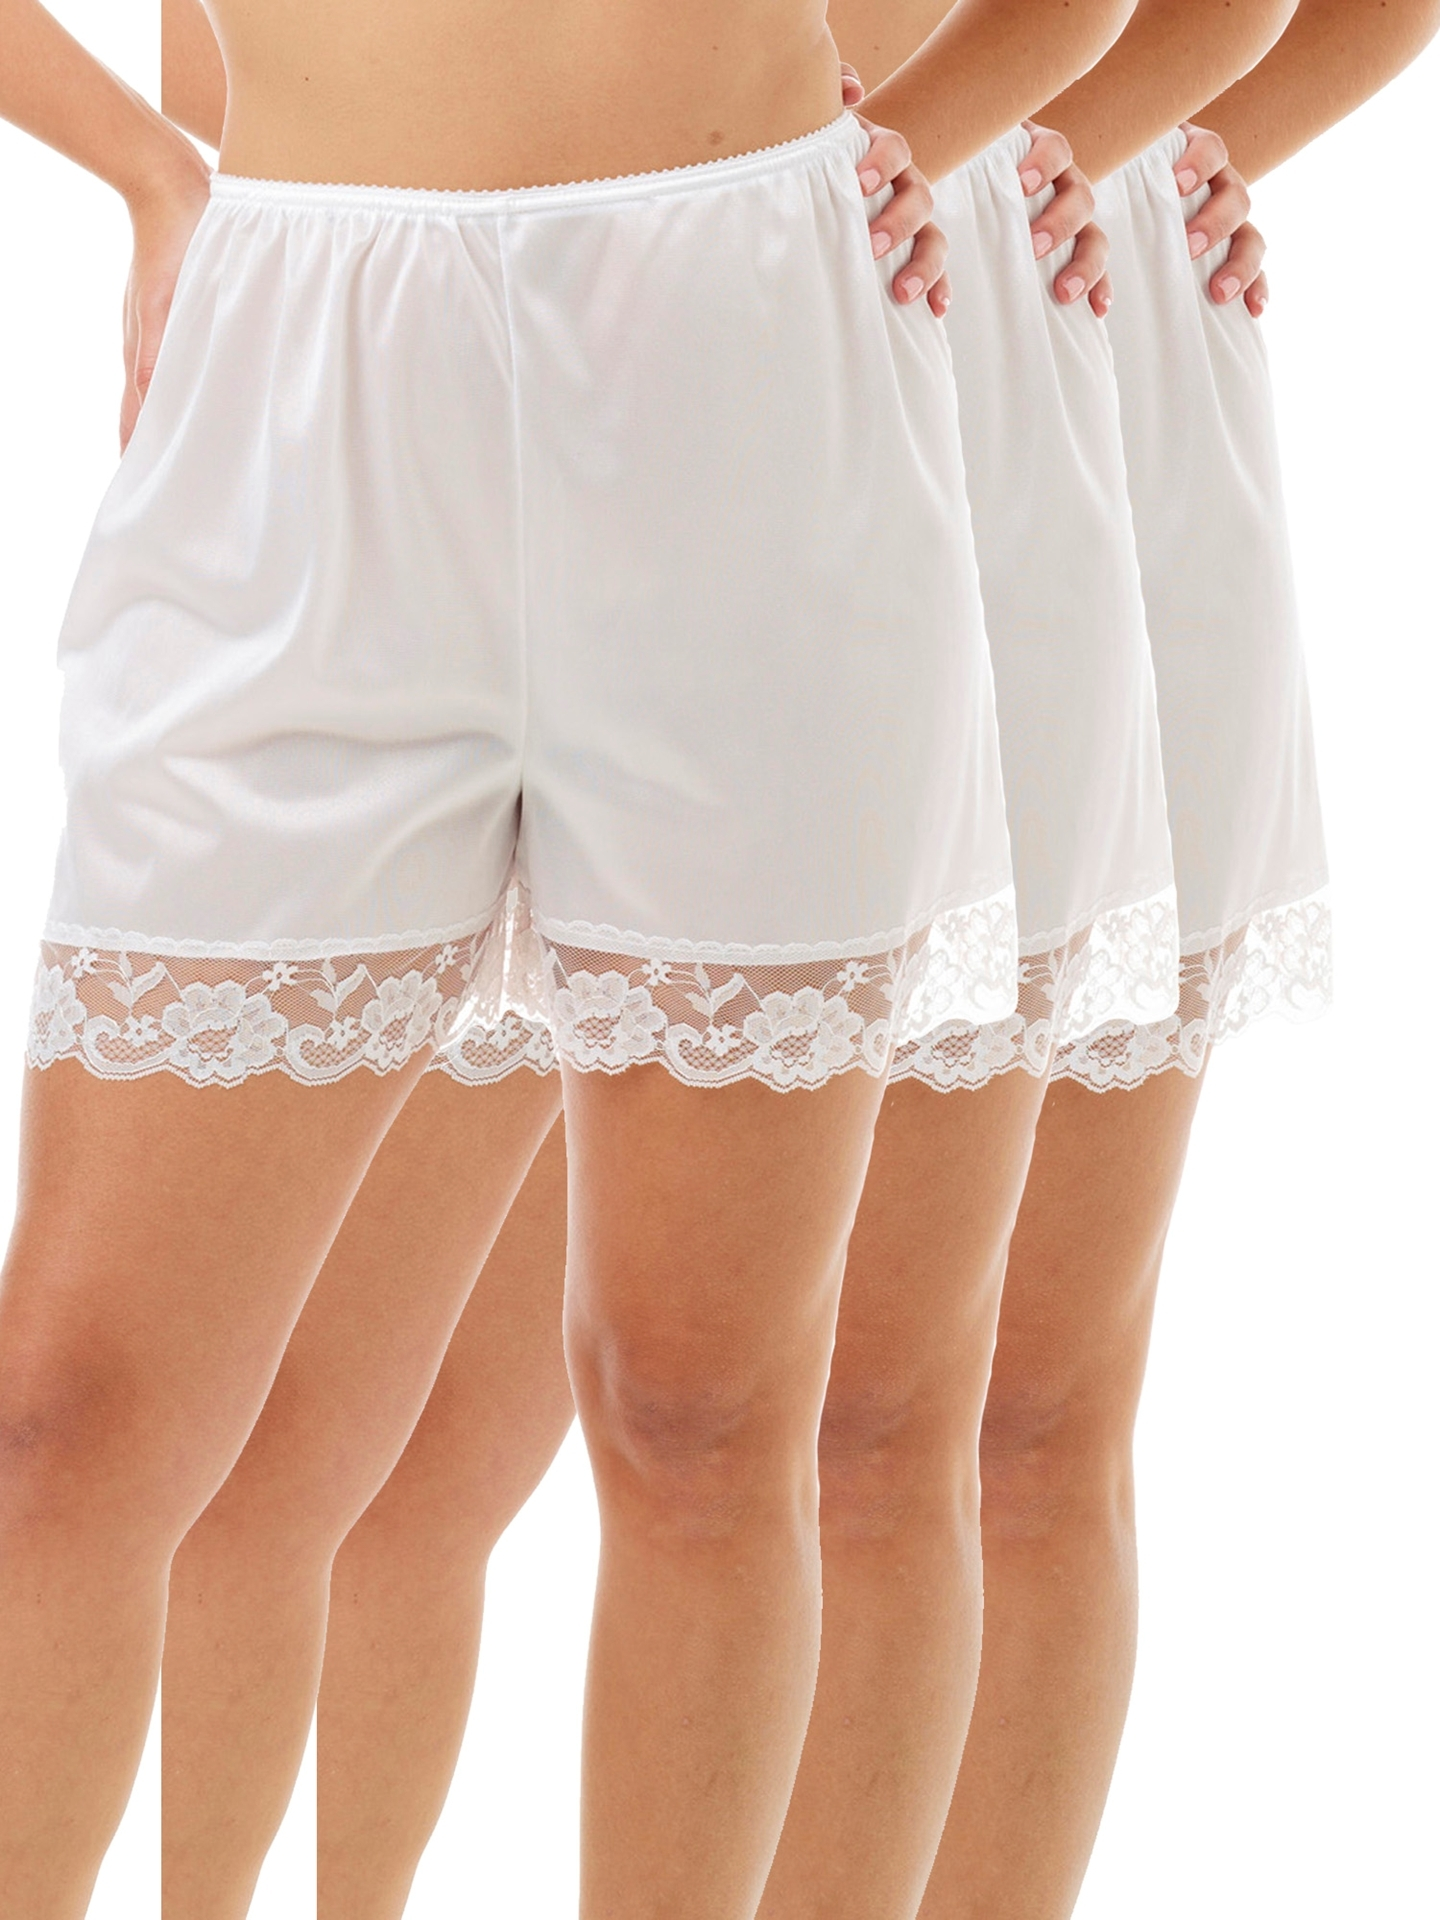 Picture of Nylon Pettipants 4-Inch Inseam 3-Pack